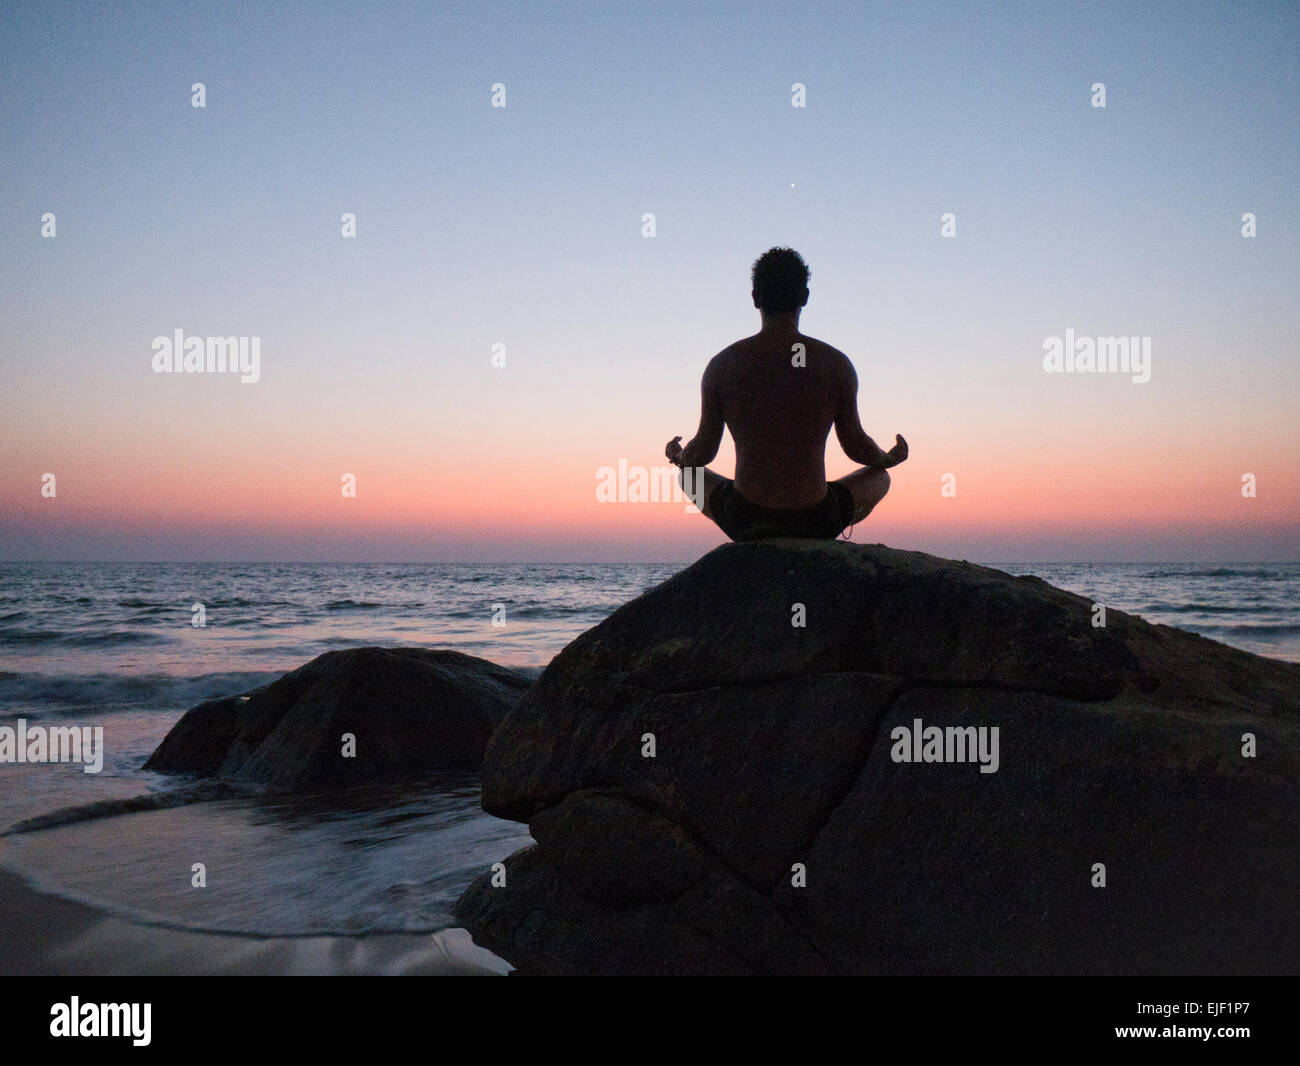 A man in meditation on a beach in Goa India at sunset as venus rises - Stock Image